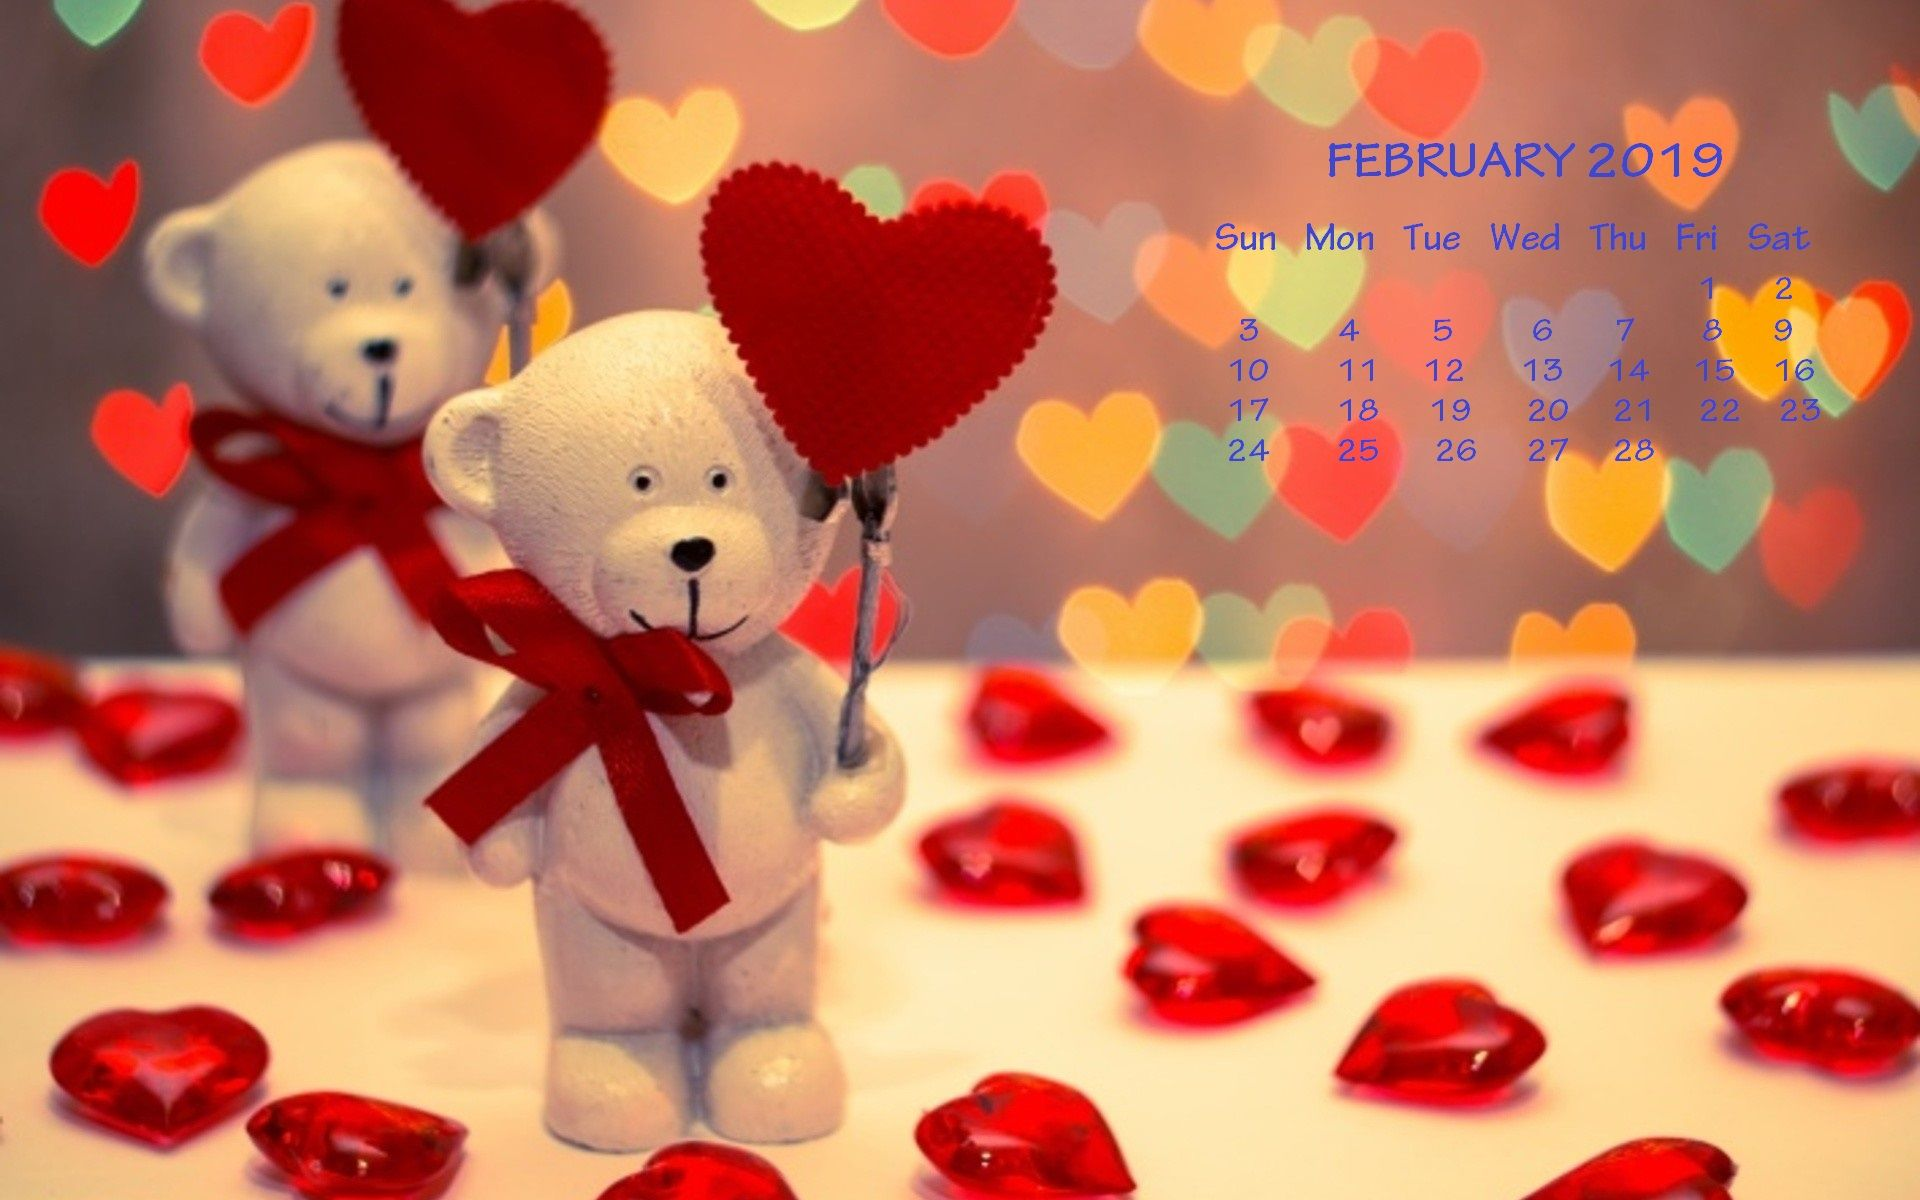 Valentines Day Wallpaper With Calendar Feb month 2019